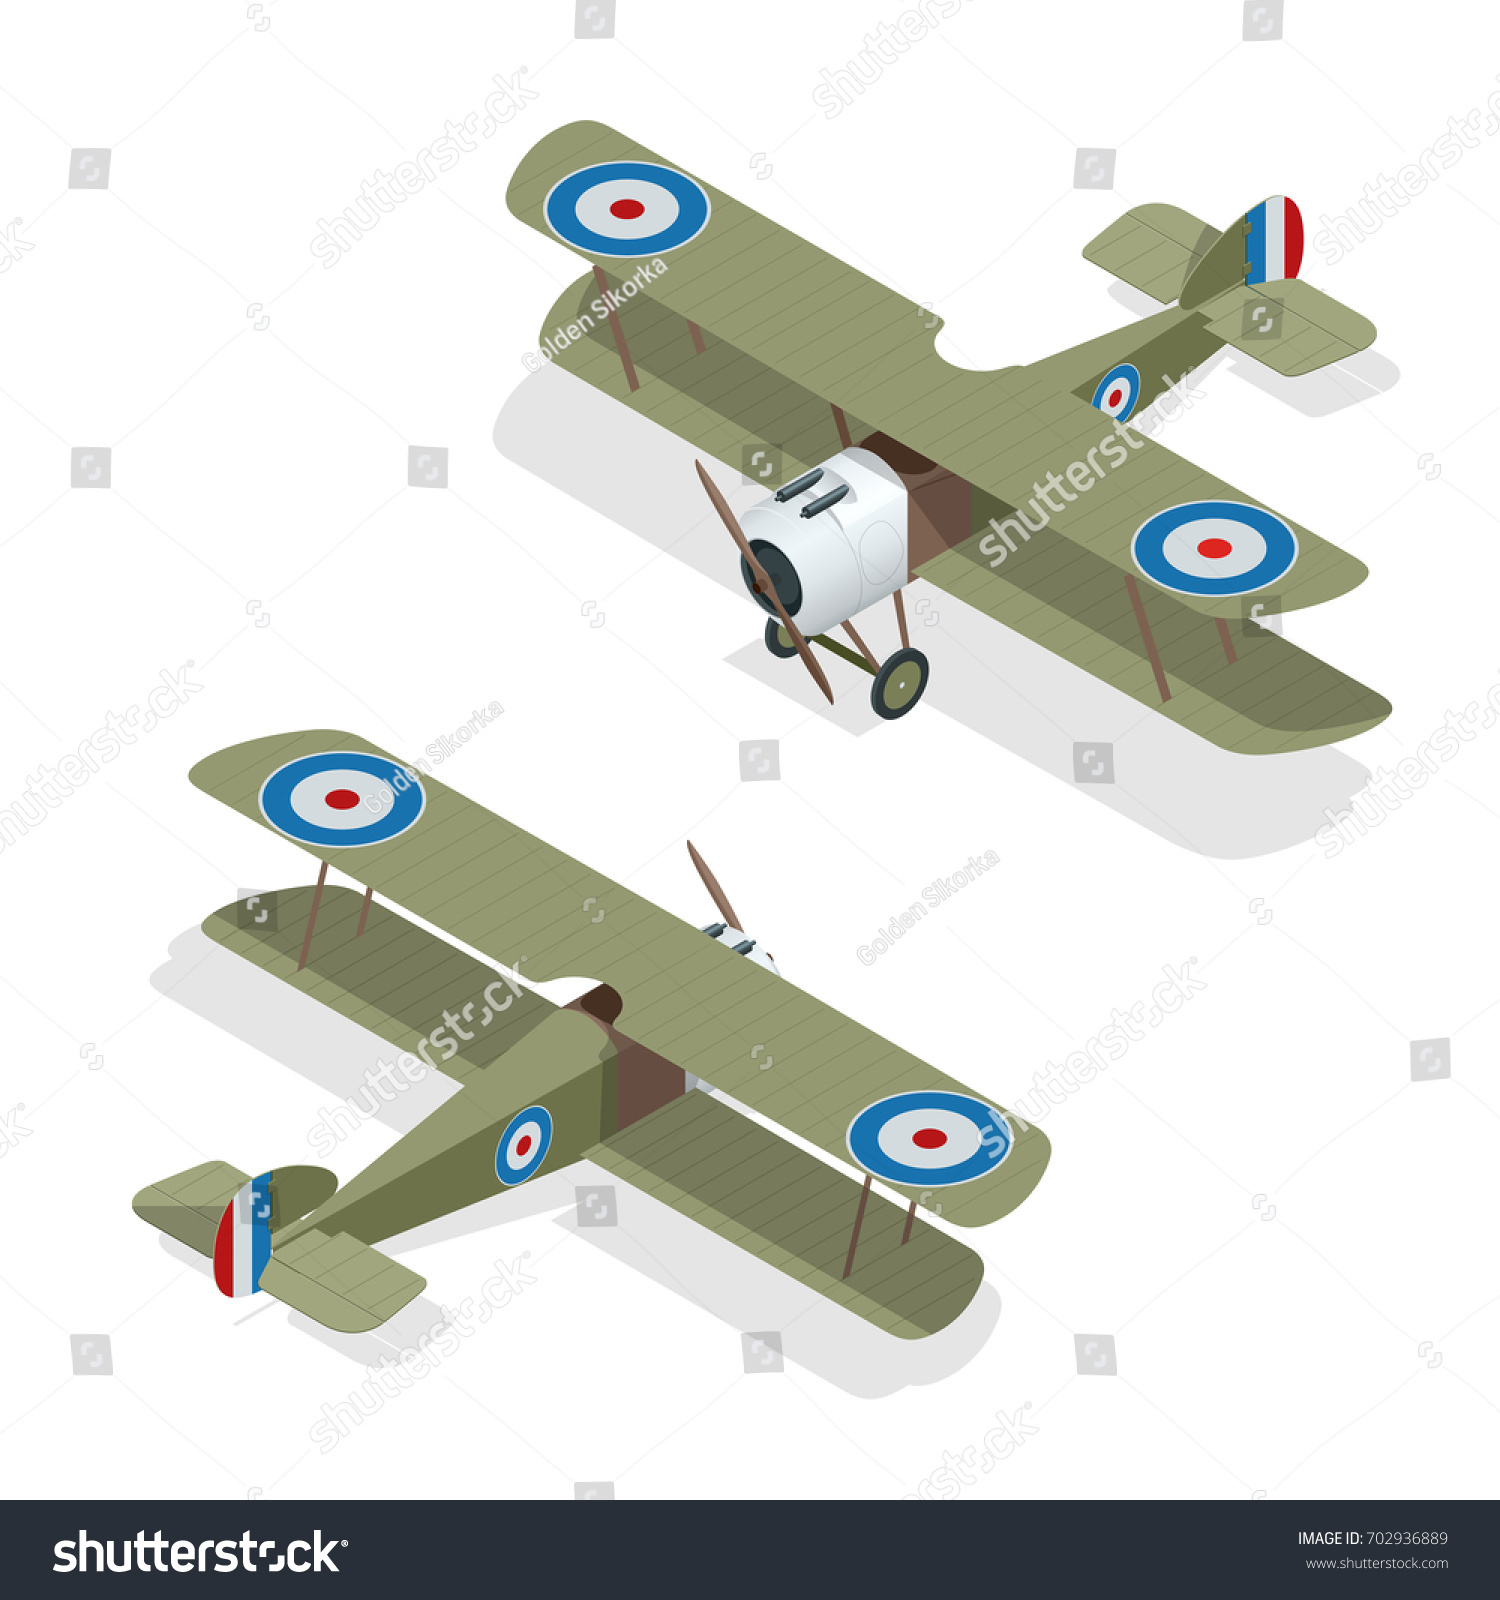 Small Airplane Diagram Schematics Wiring Diagrams Parts Of A Plane Isometric Vector Old Biplane Vectores En Drawing